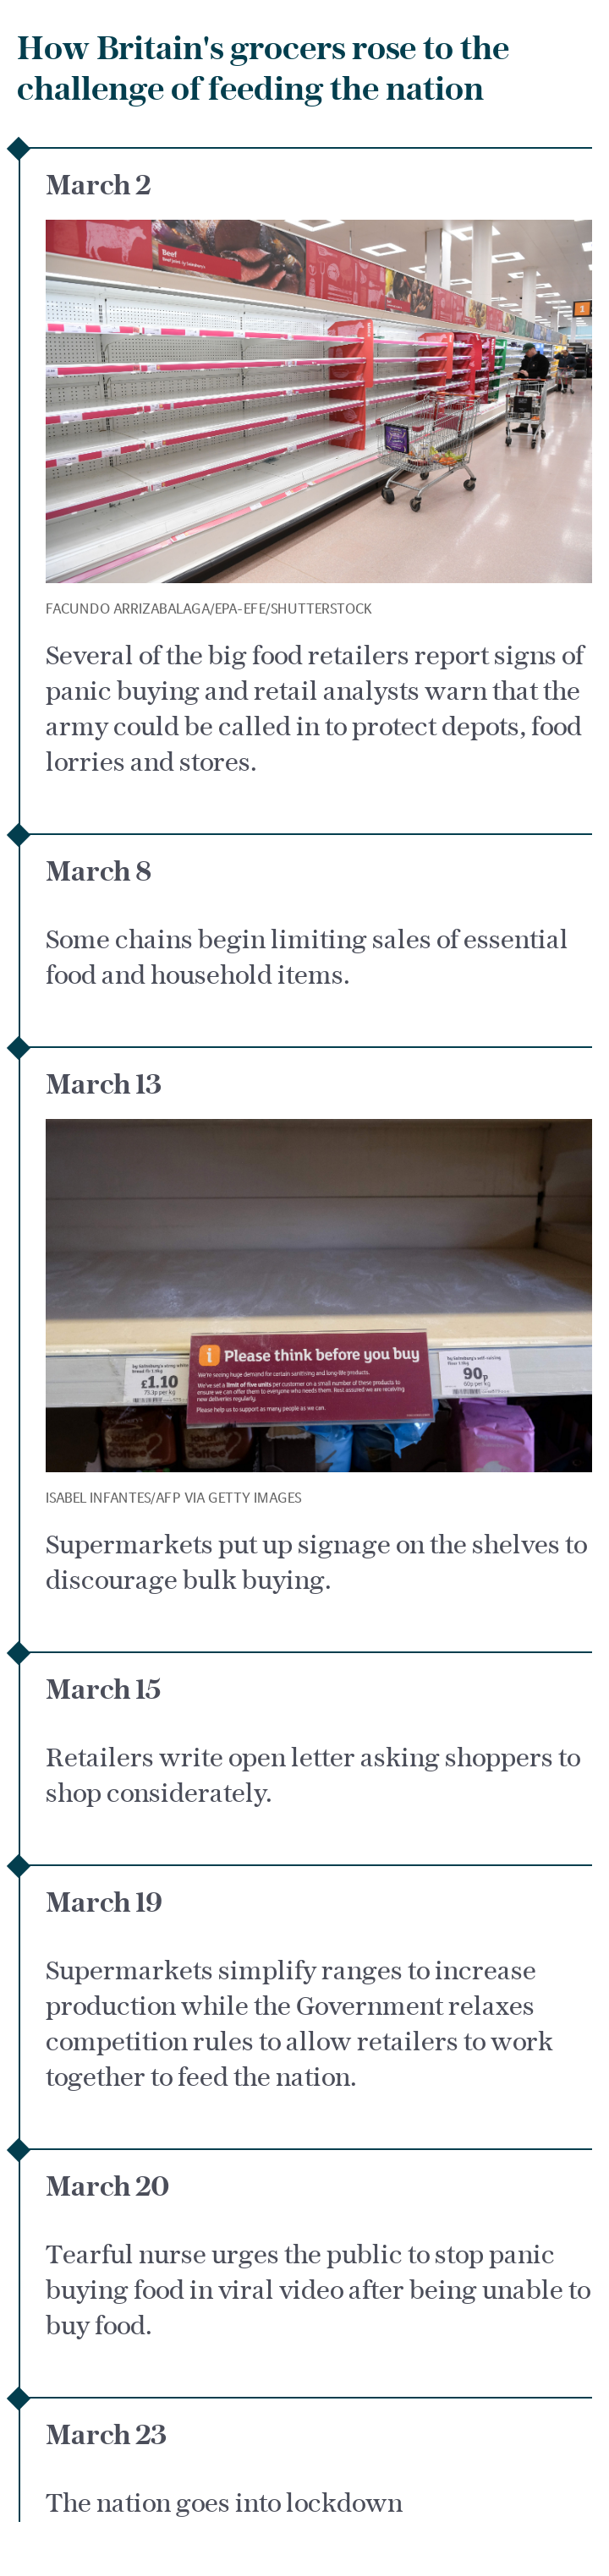 How Britain's grocers rose to the challenge of feeding the nation